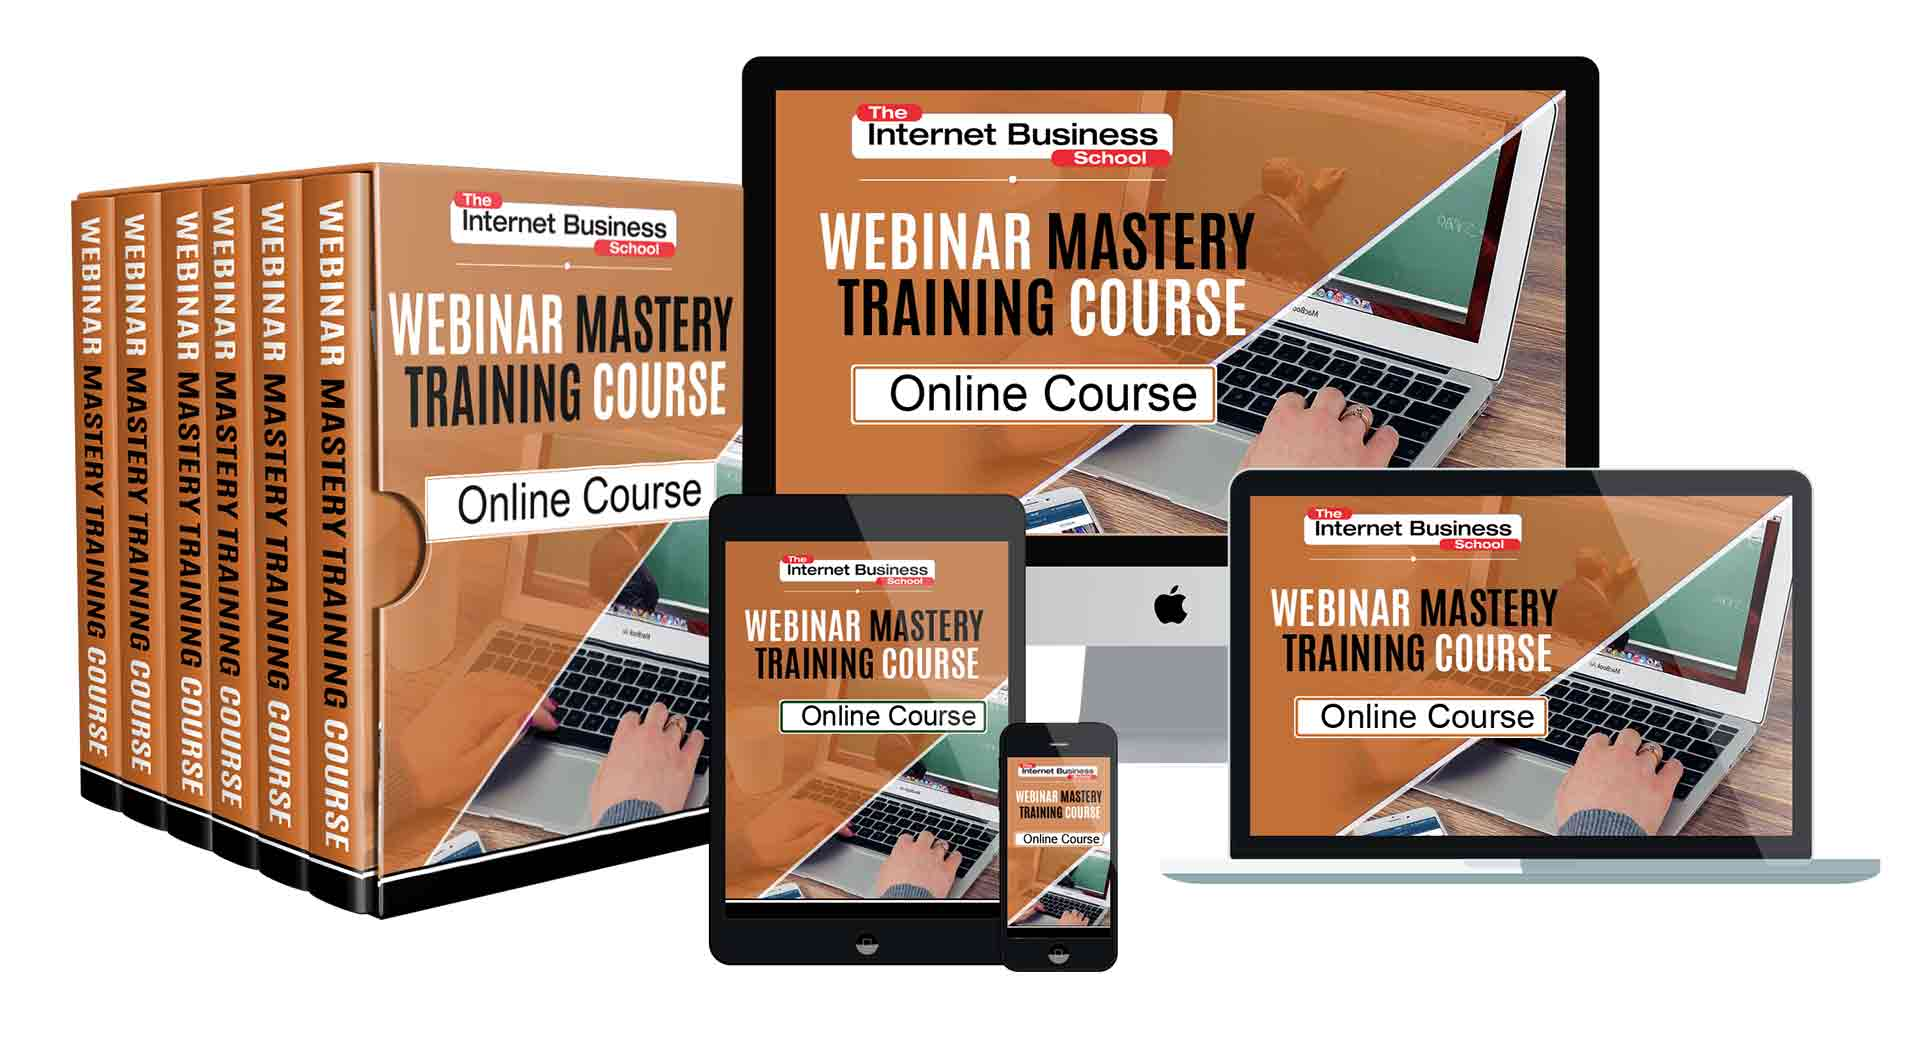 Webinar Mastery Course - Cotswold Websites